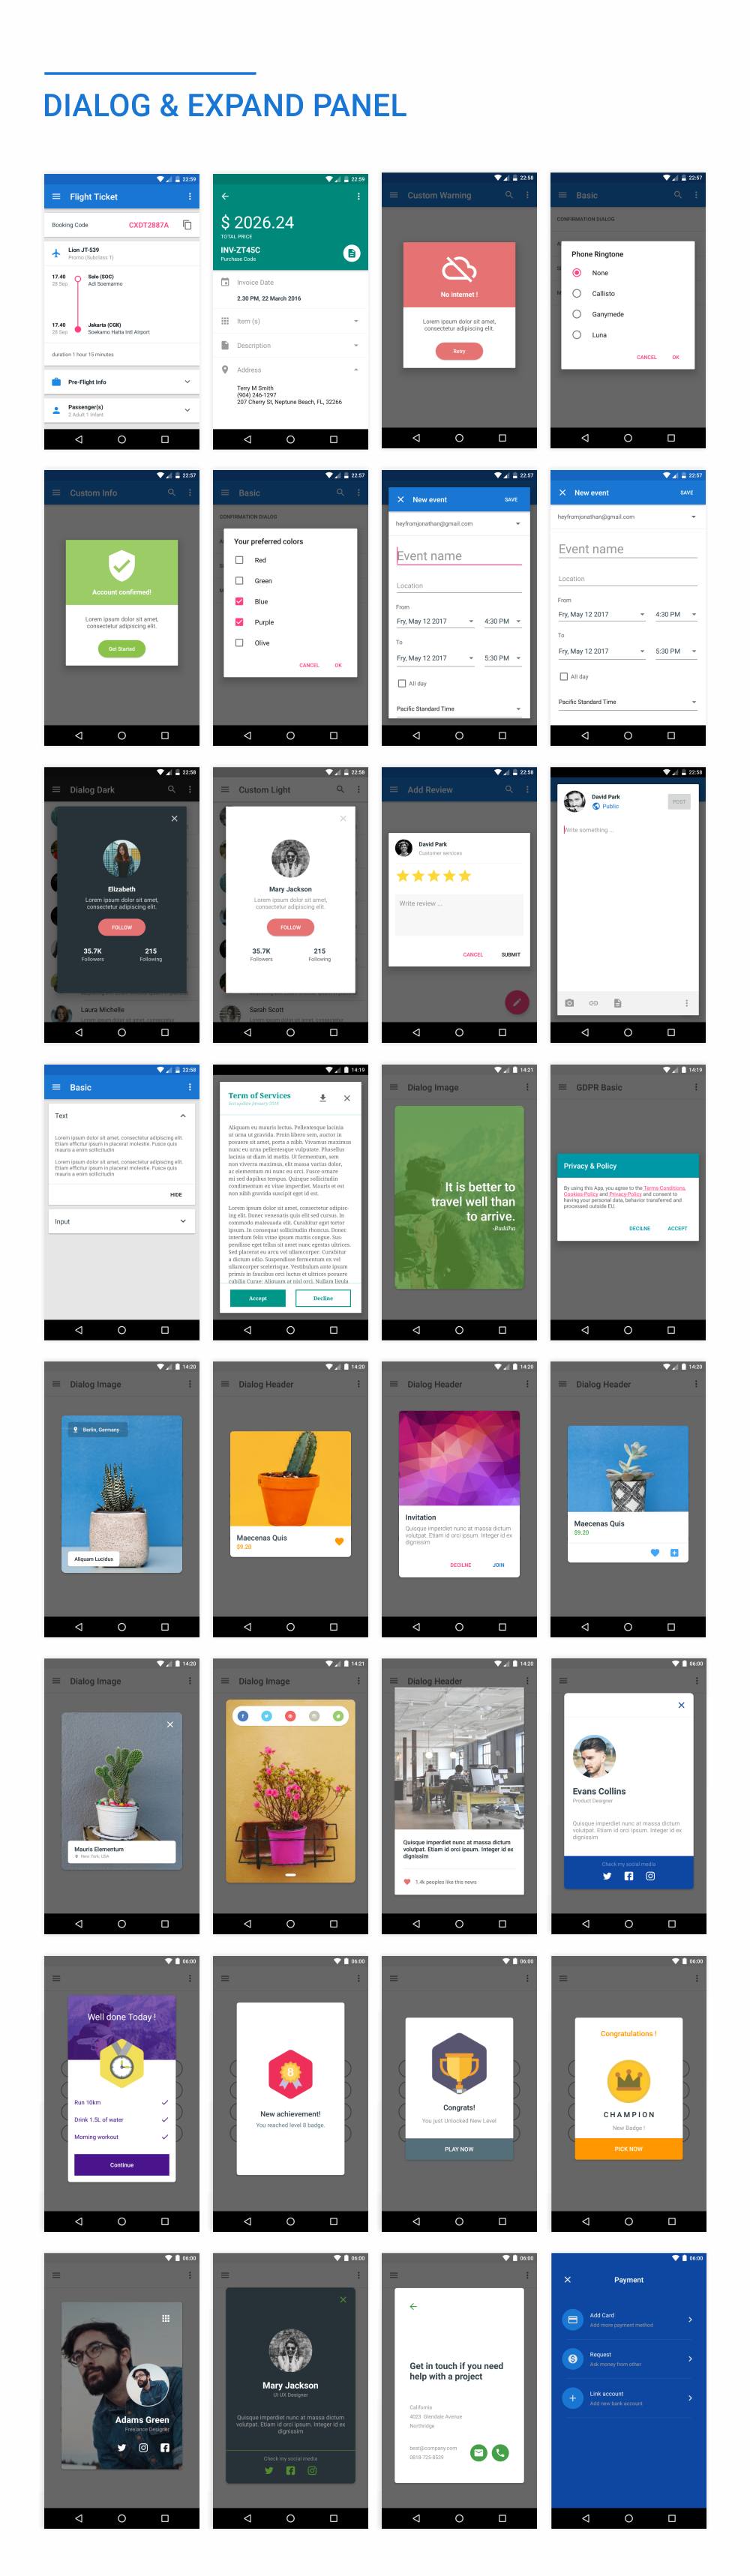 MaterialX - Android Material Design UI Components 2.5 - 36